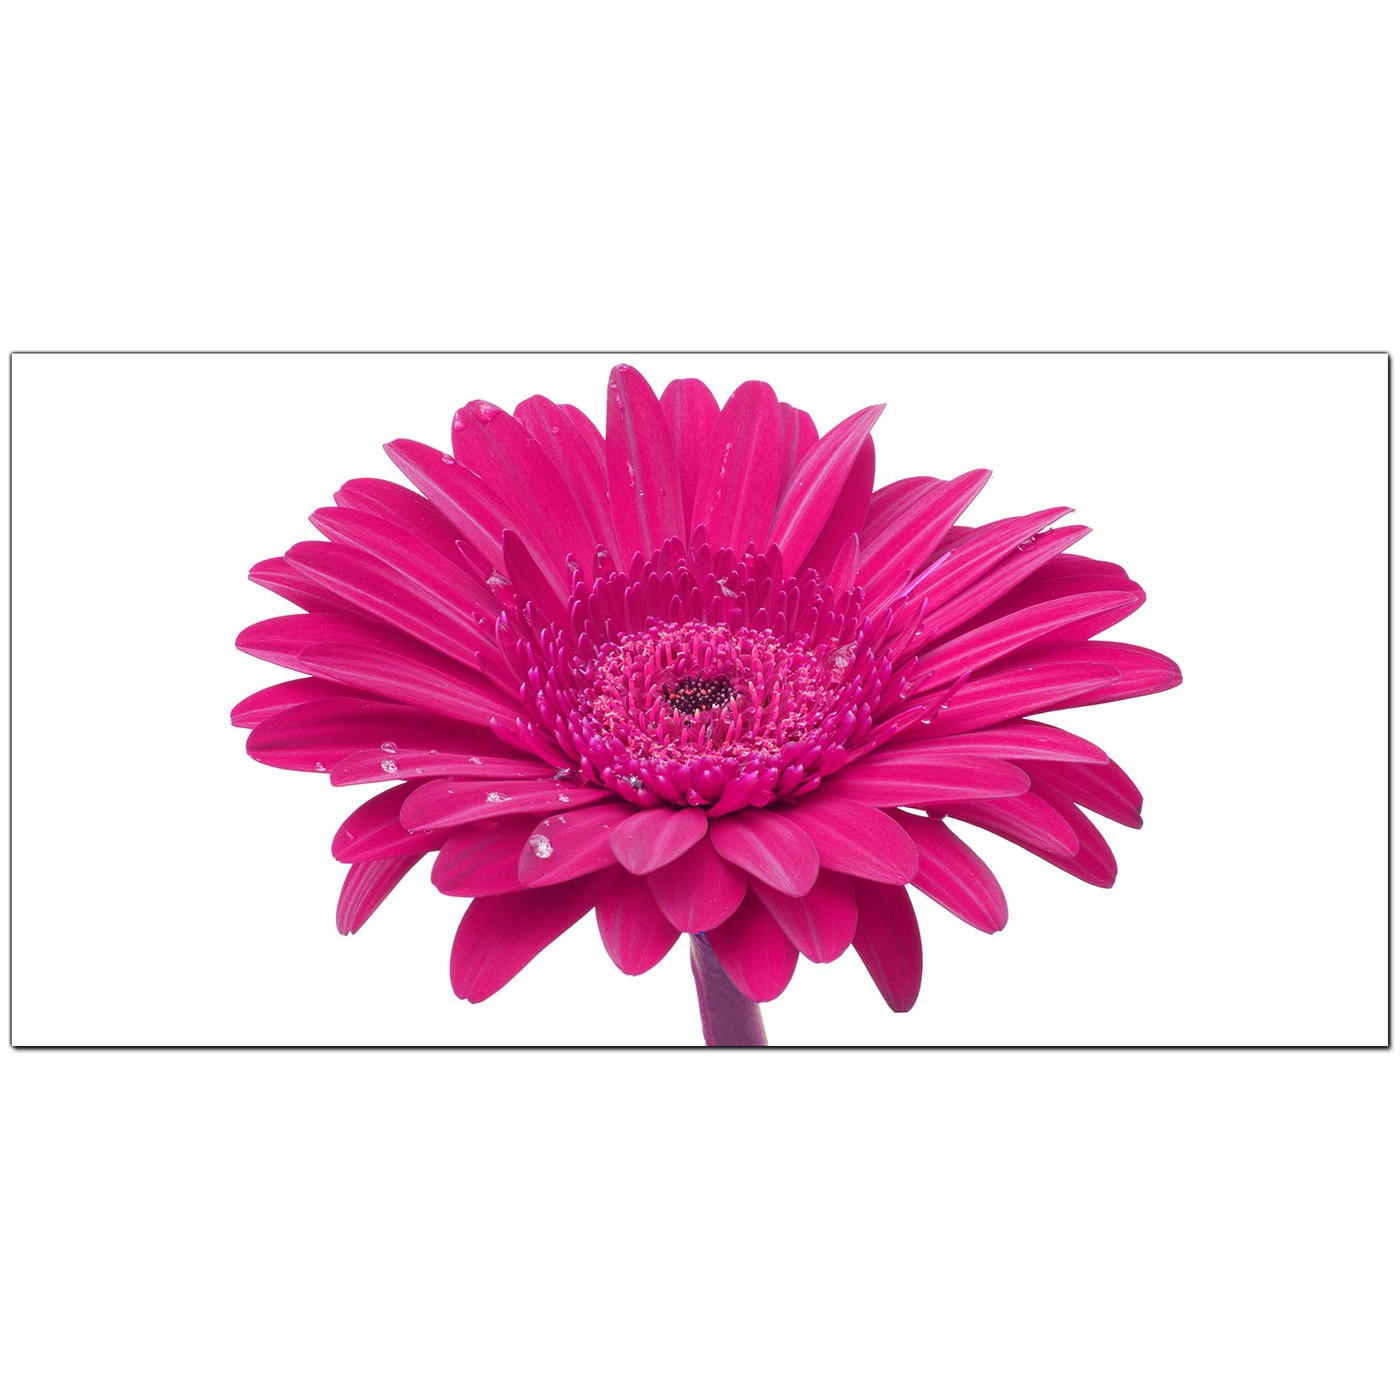 Modern pink canvas wall art of a daisy flower display gallery item 2 pink bedroom panoramic canvas of flowers display gallery item 3 bedroom pink panoramic canvas of flowers dhlflorist Image collections